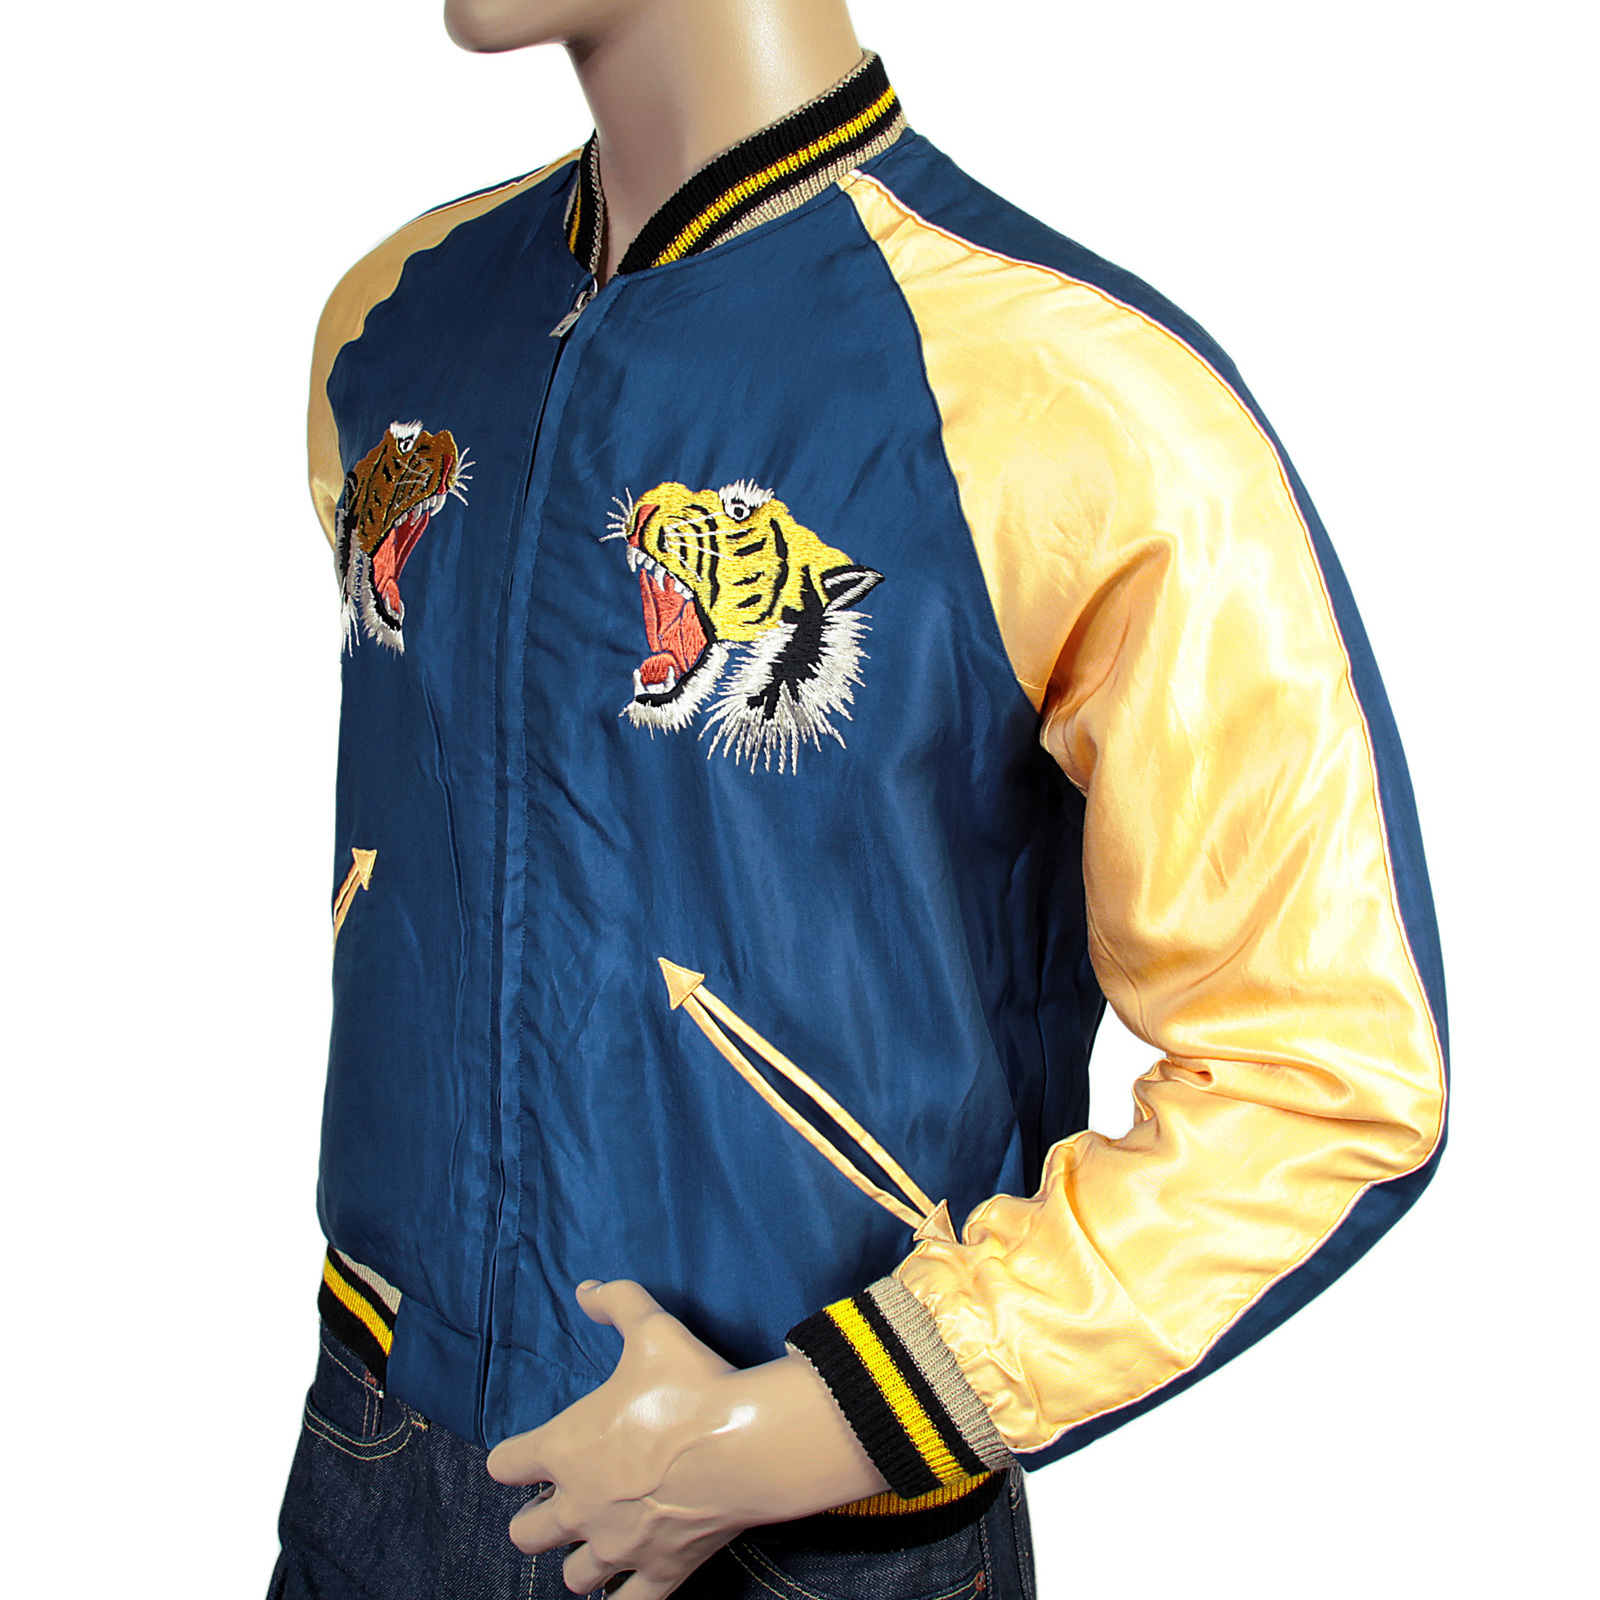 Shop For This Superb Sugar Cane Jacket Now At Togged